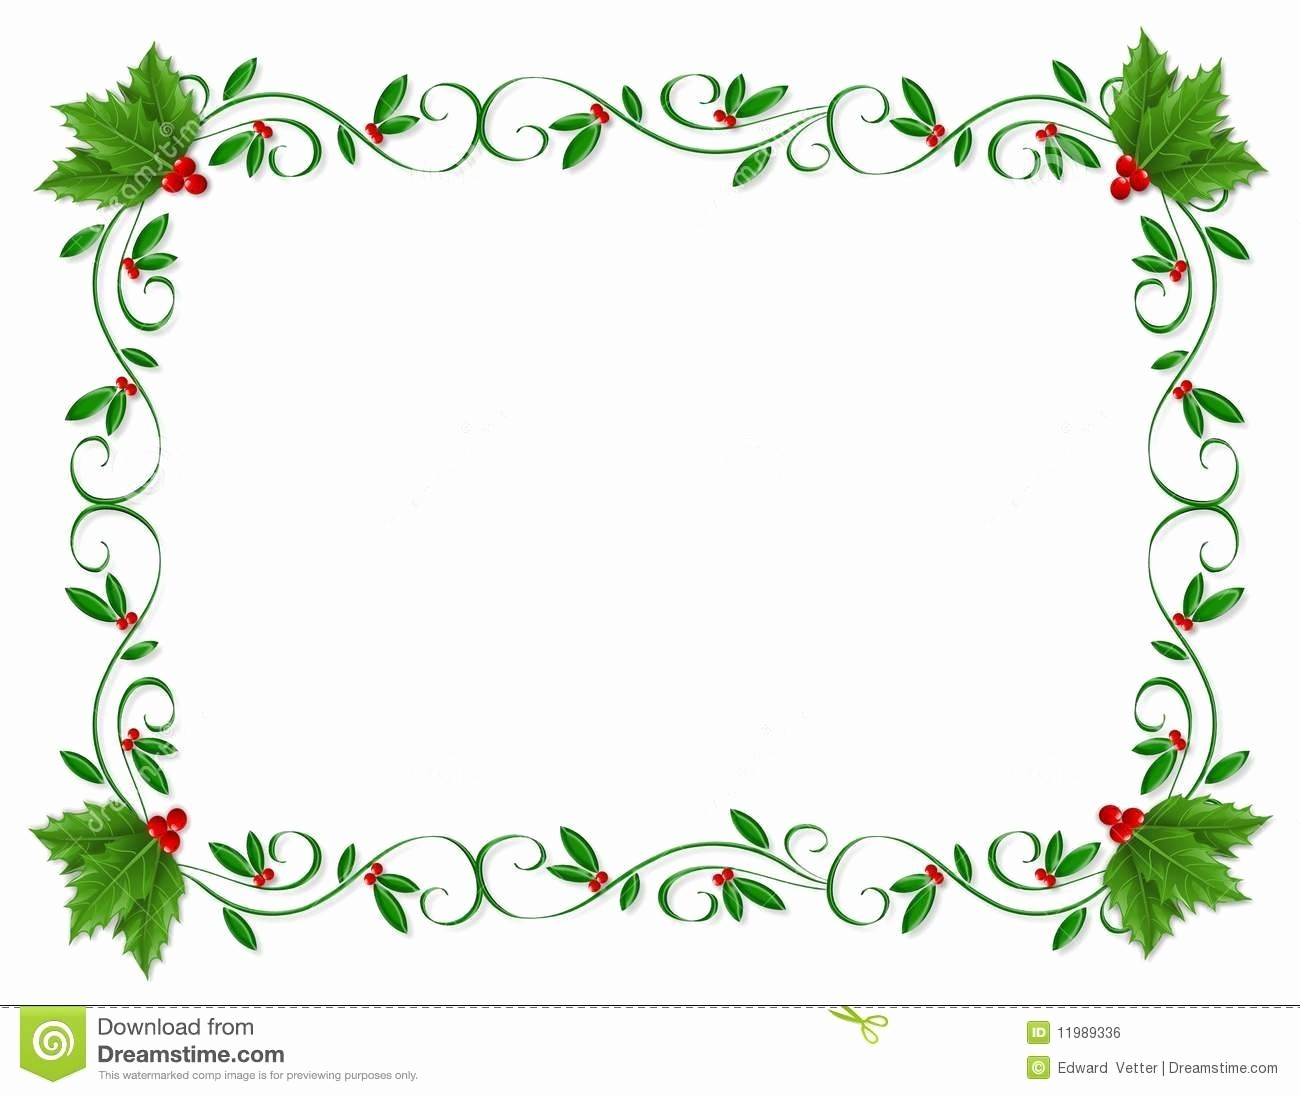 Free Holiday Templates for Word Beautiful Holiday Border Templates for Microsoft Word